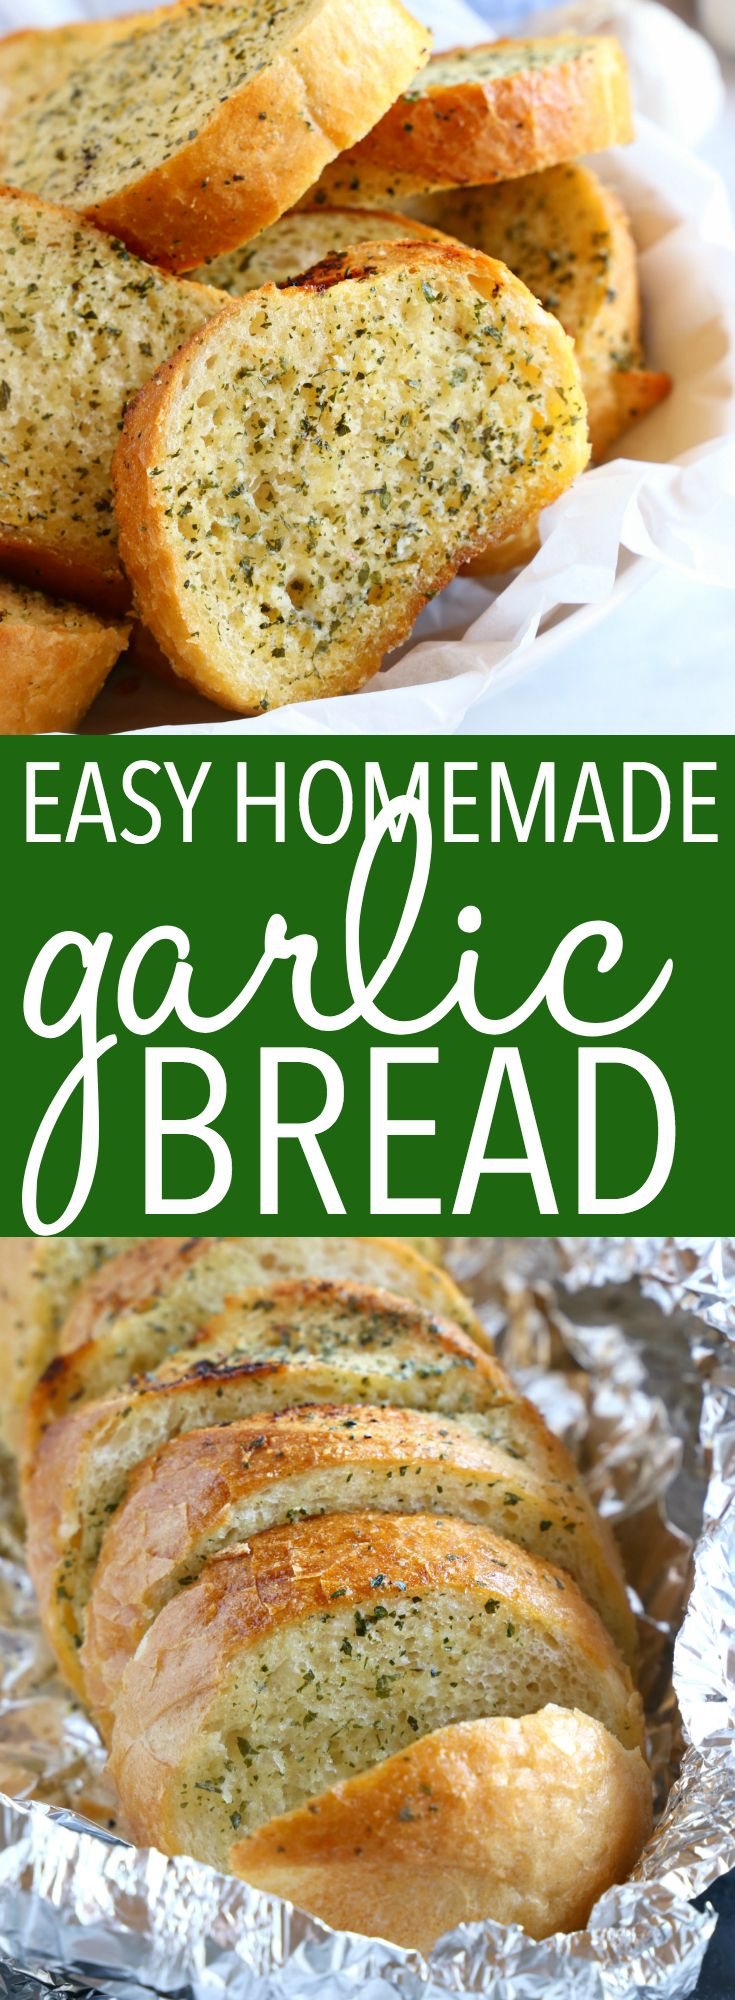 Easy Homemade Garlic Bread images